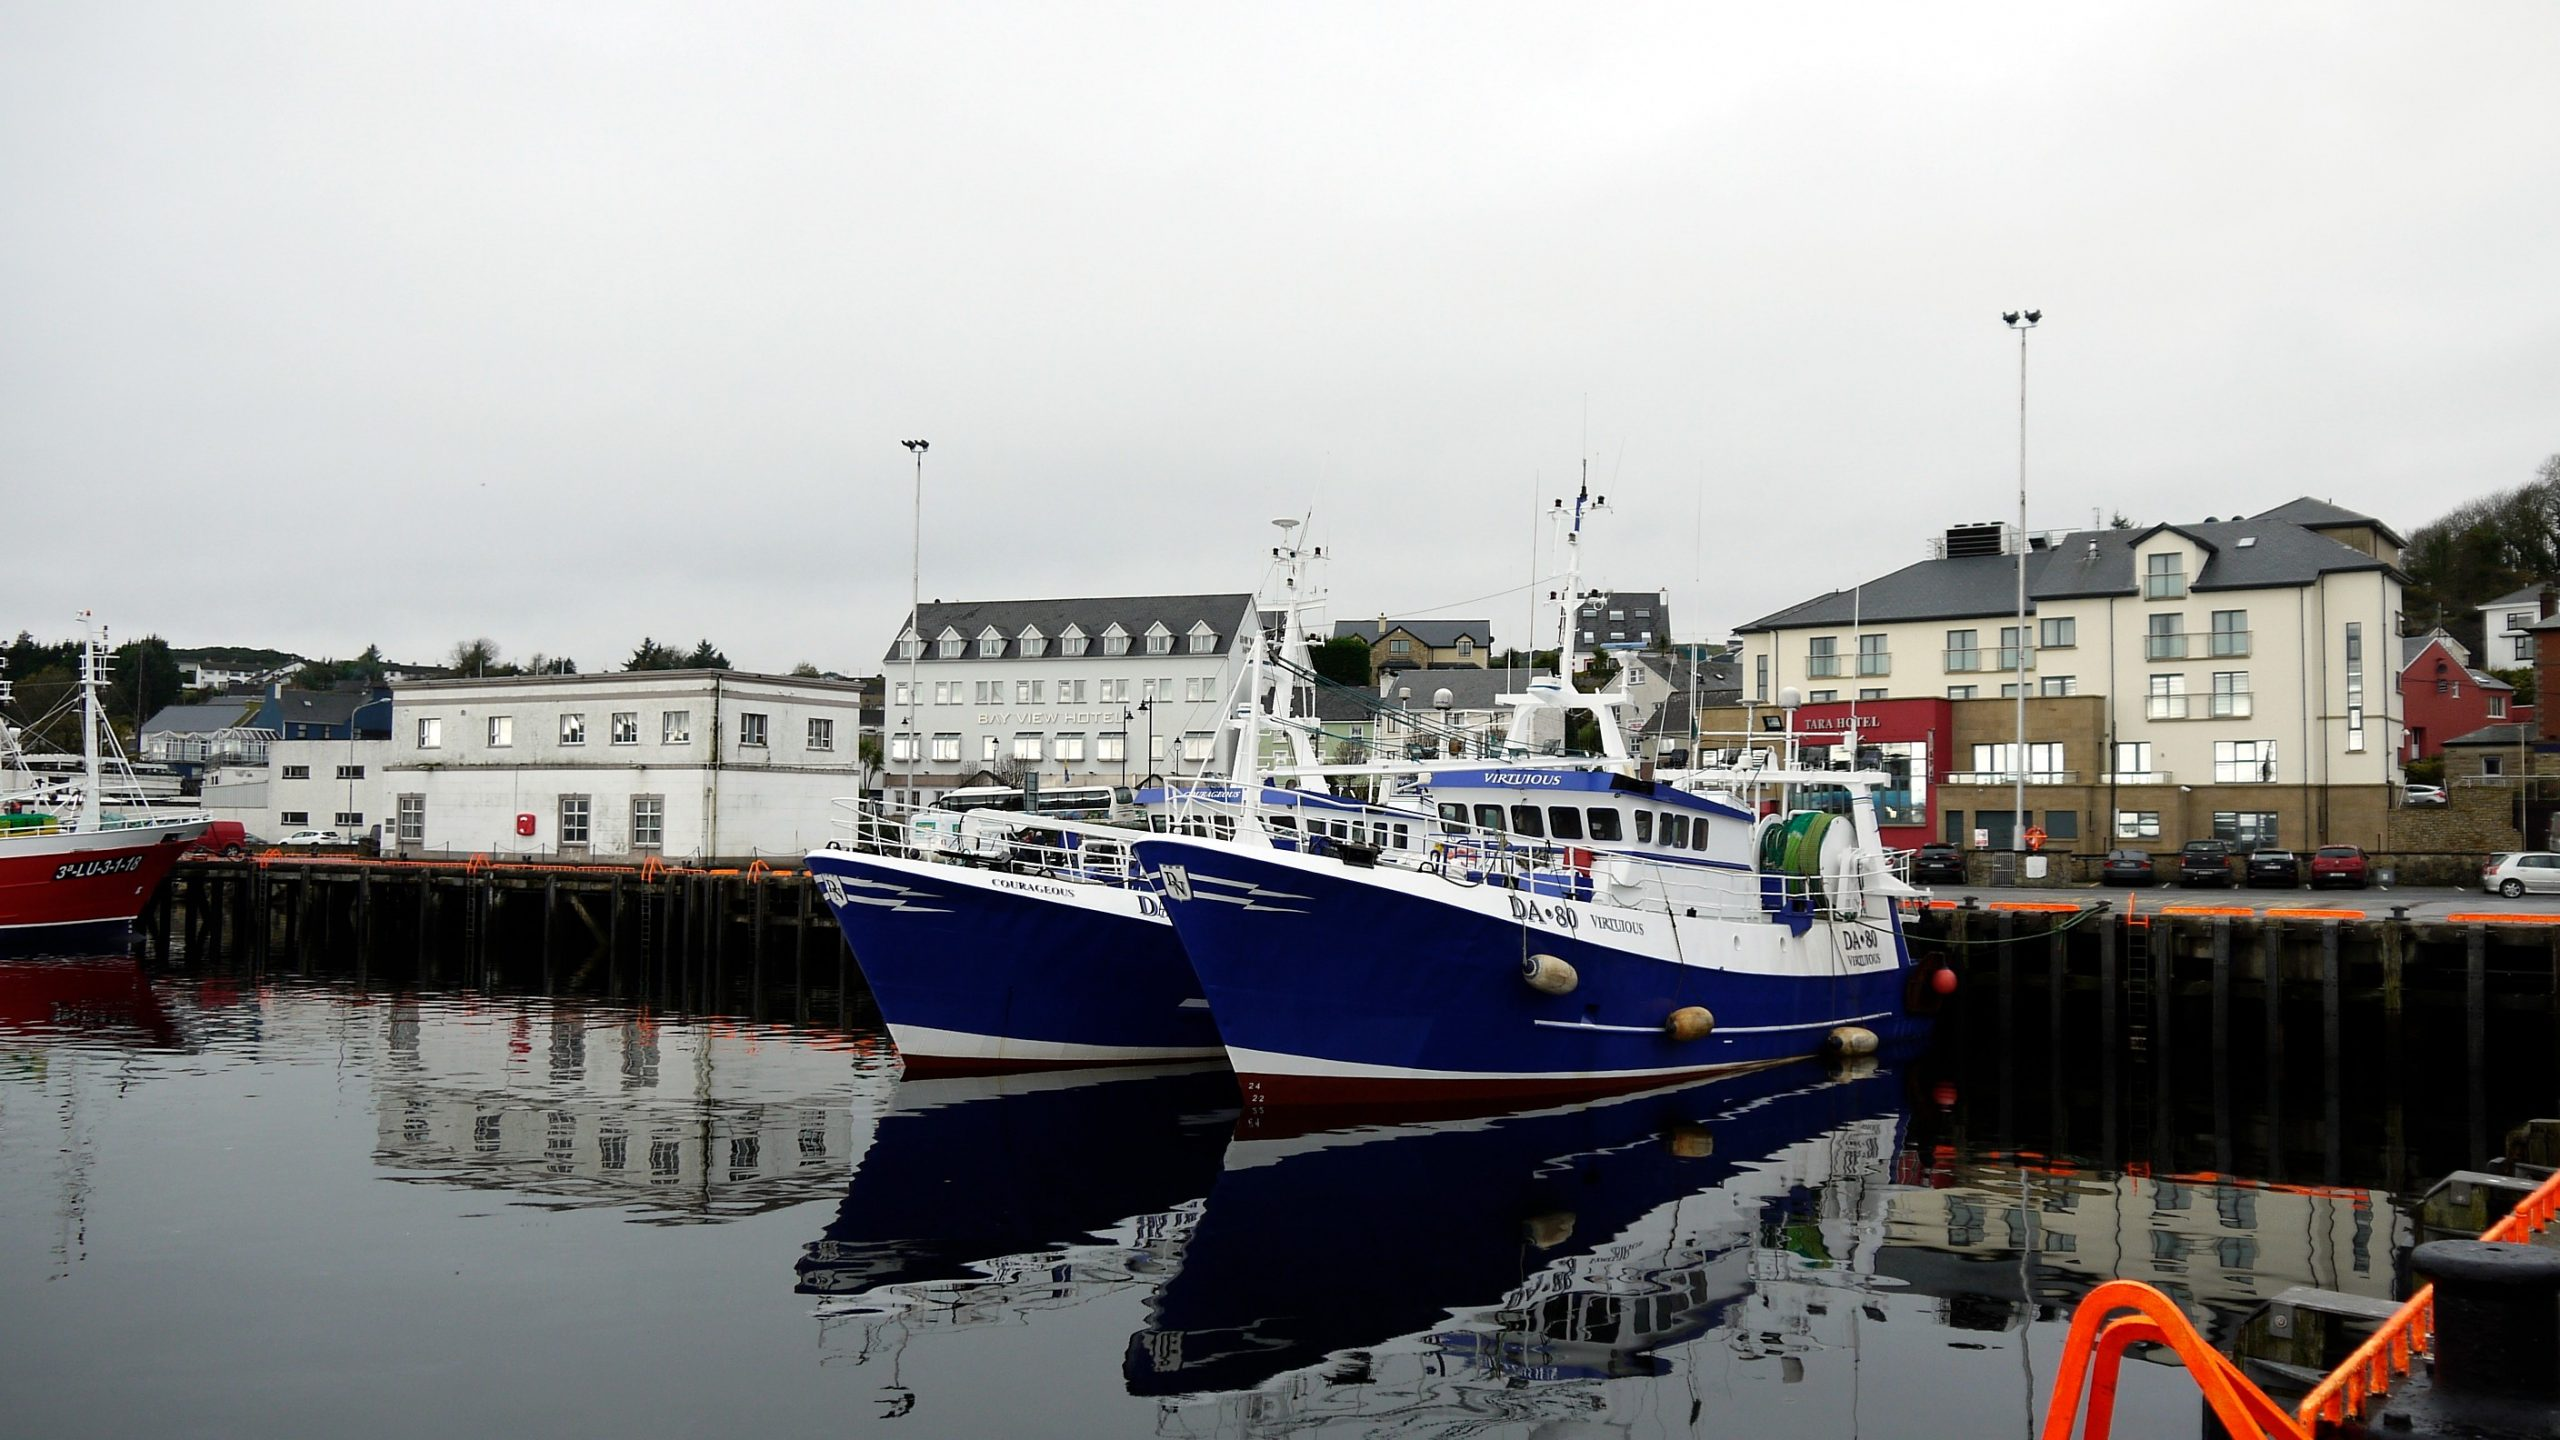 Killybegs Pier